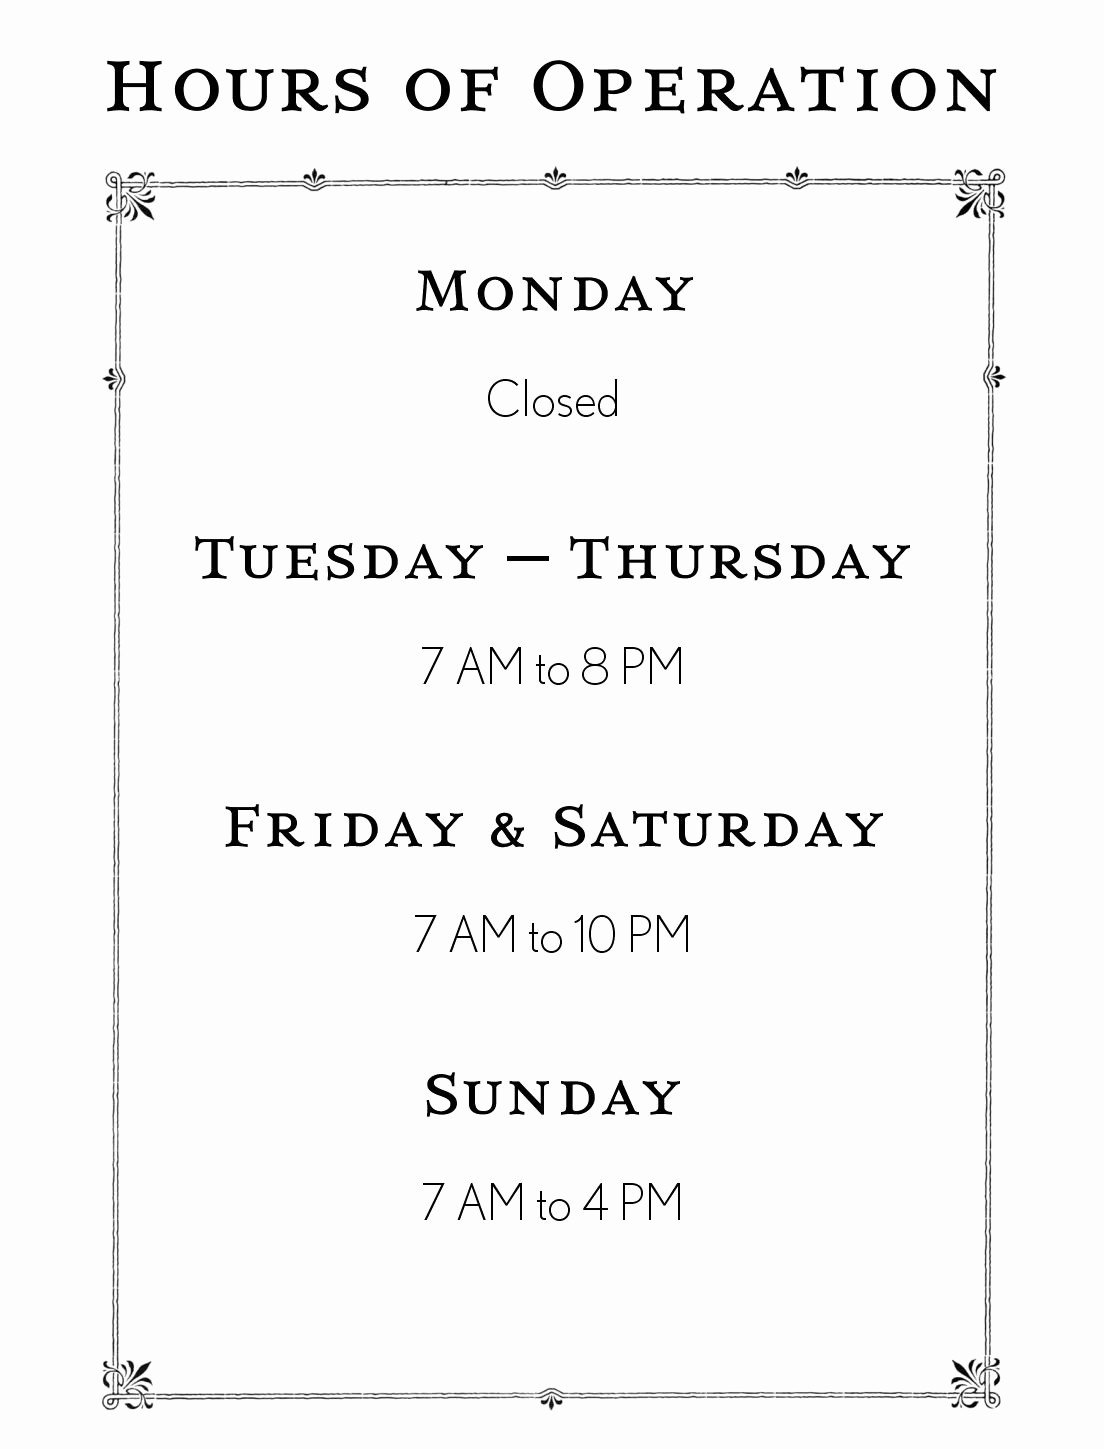 Hours Of Operation Template Word Unique Hours Operation Template